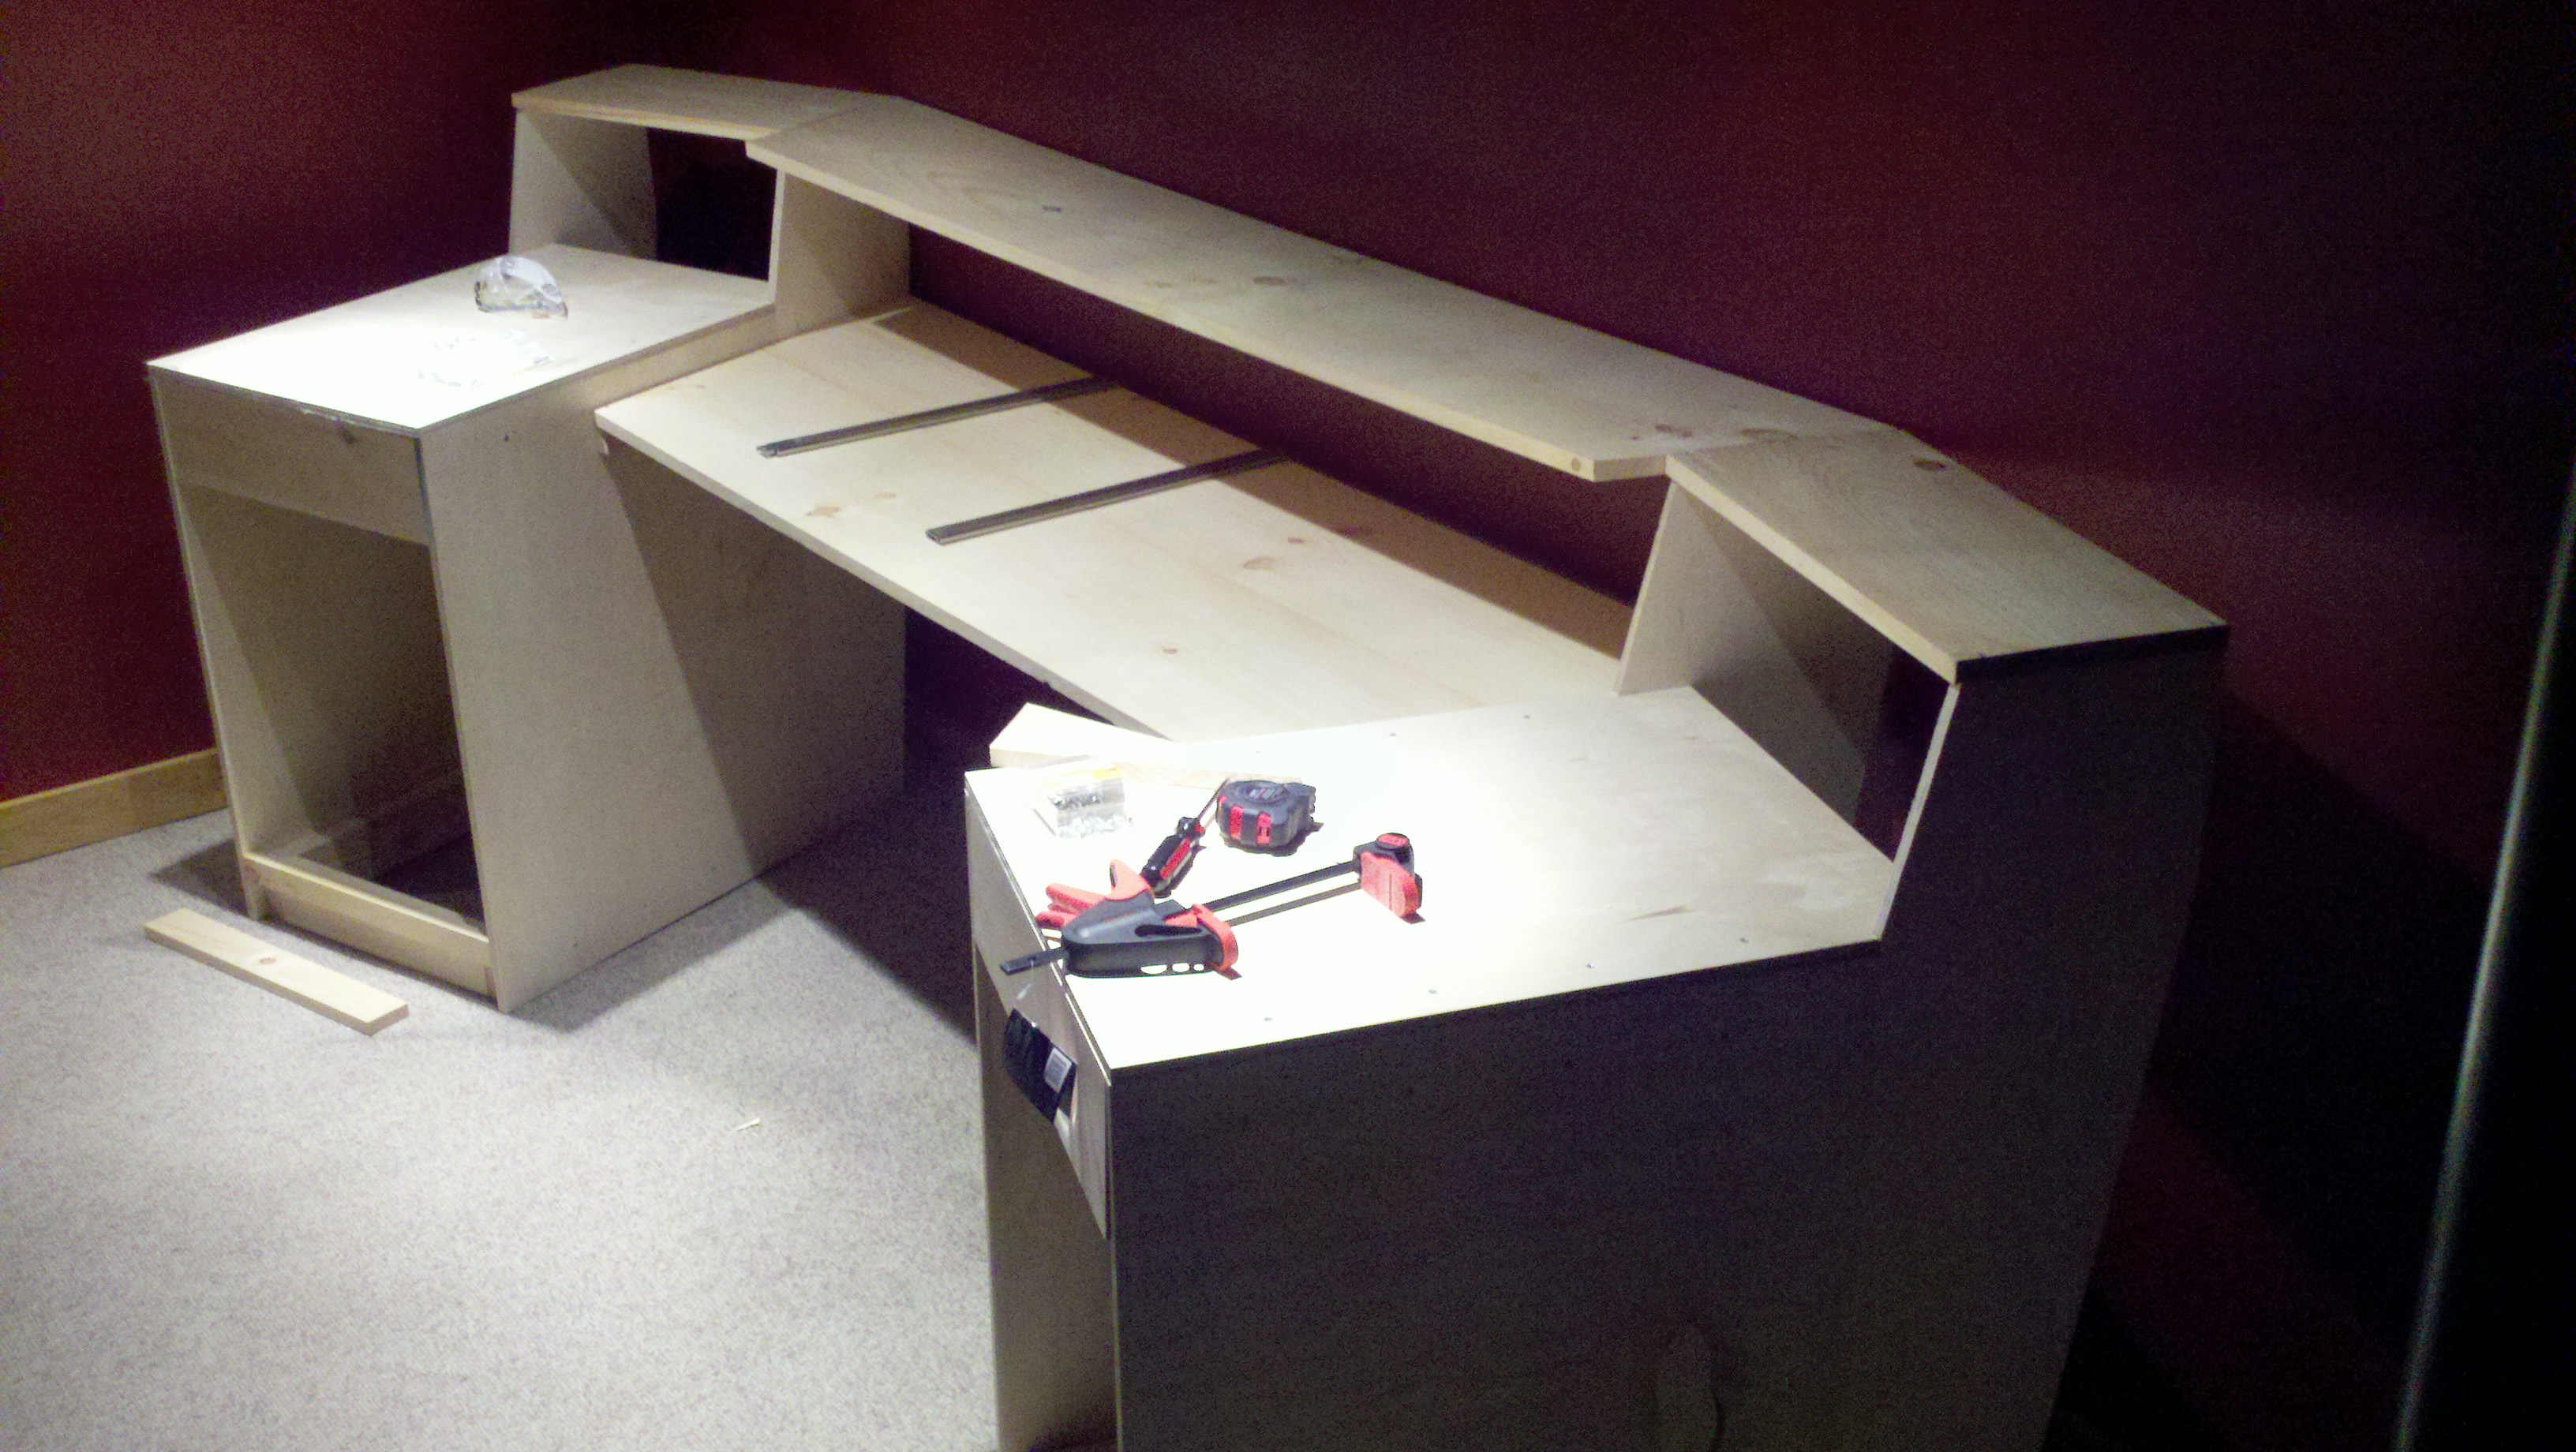 Design Make Your Own Desk build your own desk plans diy modern farmhouse and unique of for my favorite all in one loft bunk bed with trundle own